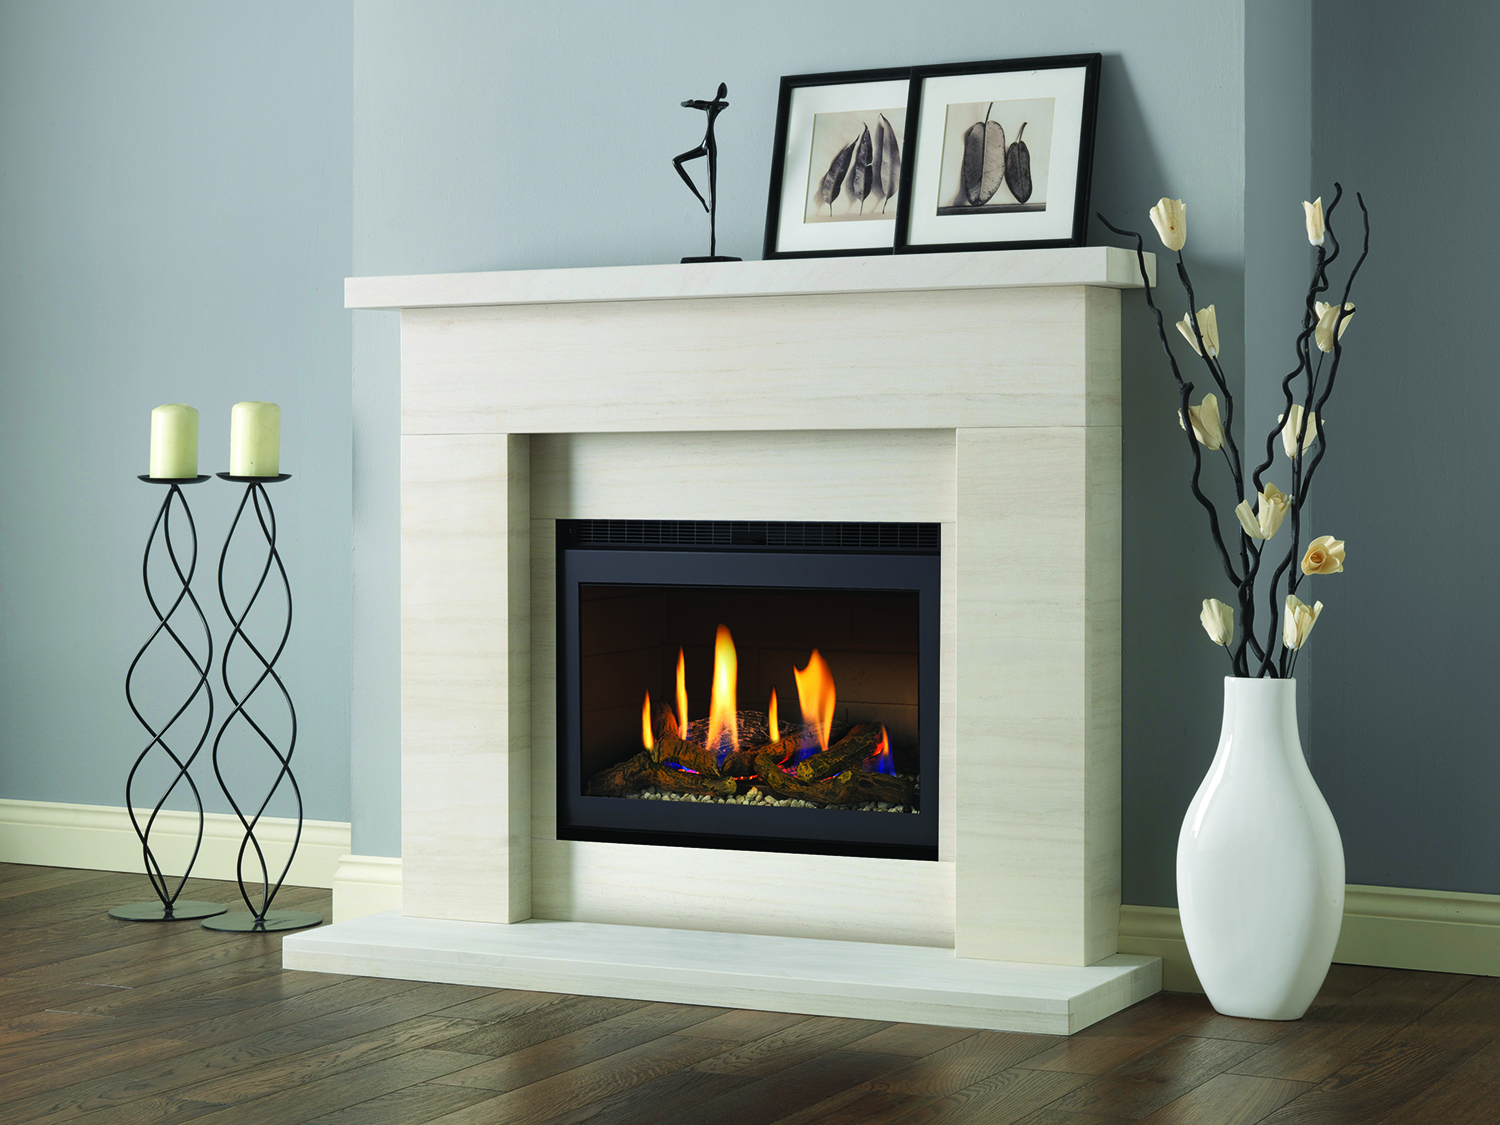 Modern Electric Fire Suites Part - 23: The Pureglow Drayton And Chelsea High Efficiency Gas Fireplace Suite Is A  Complete Fireplace Package That Combines The Modern Pureglow Drayton  Natural ...